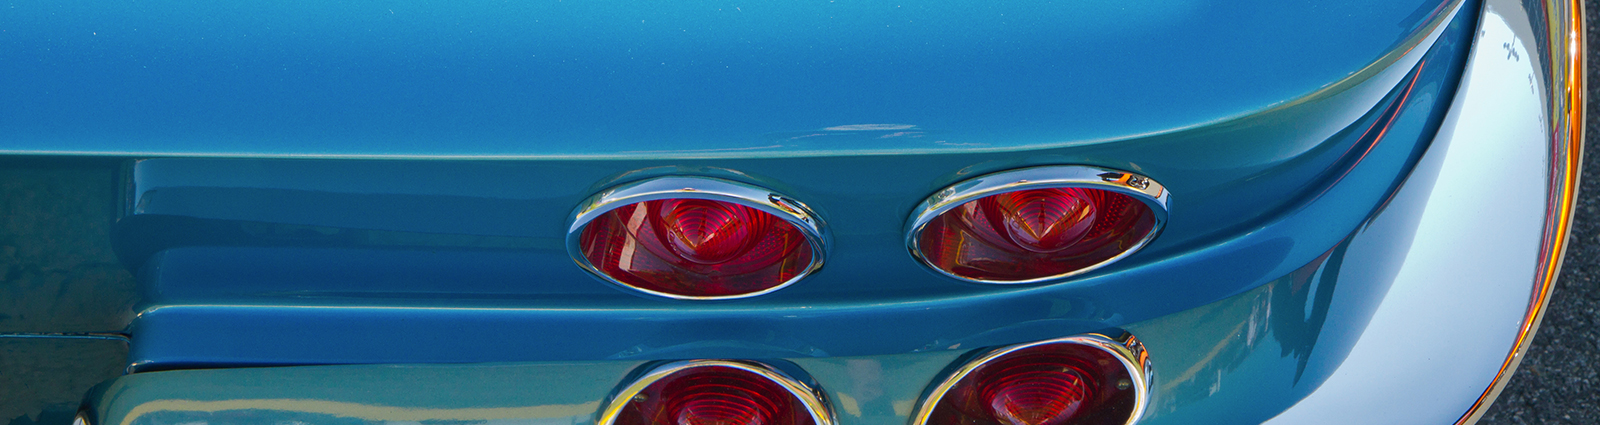 corvette-taillight-header